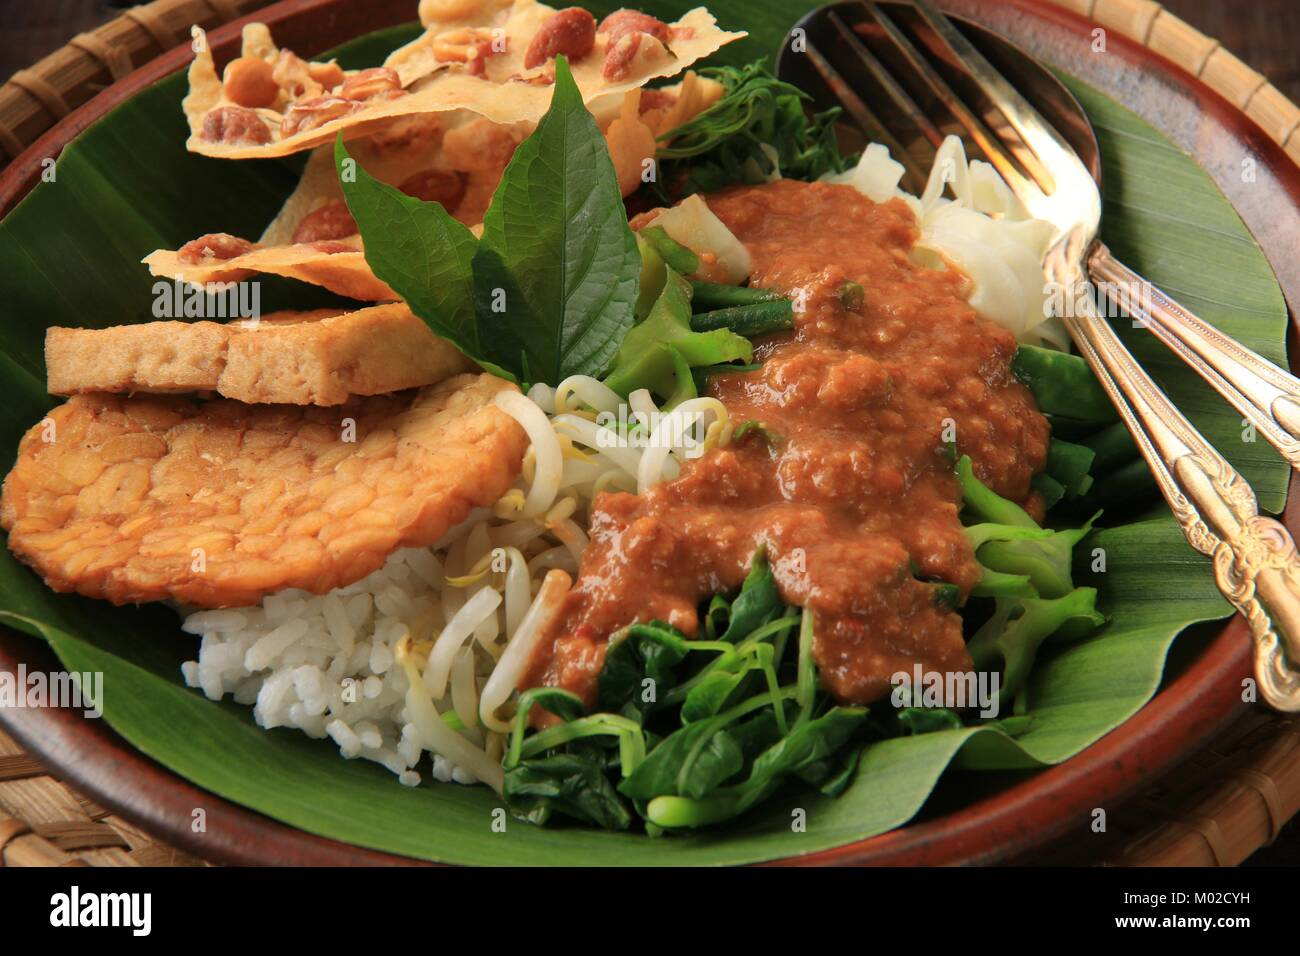 nasi pecel the traditional javanese rice dish of steamed rice with